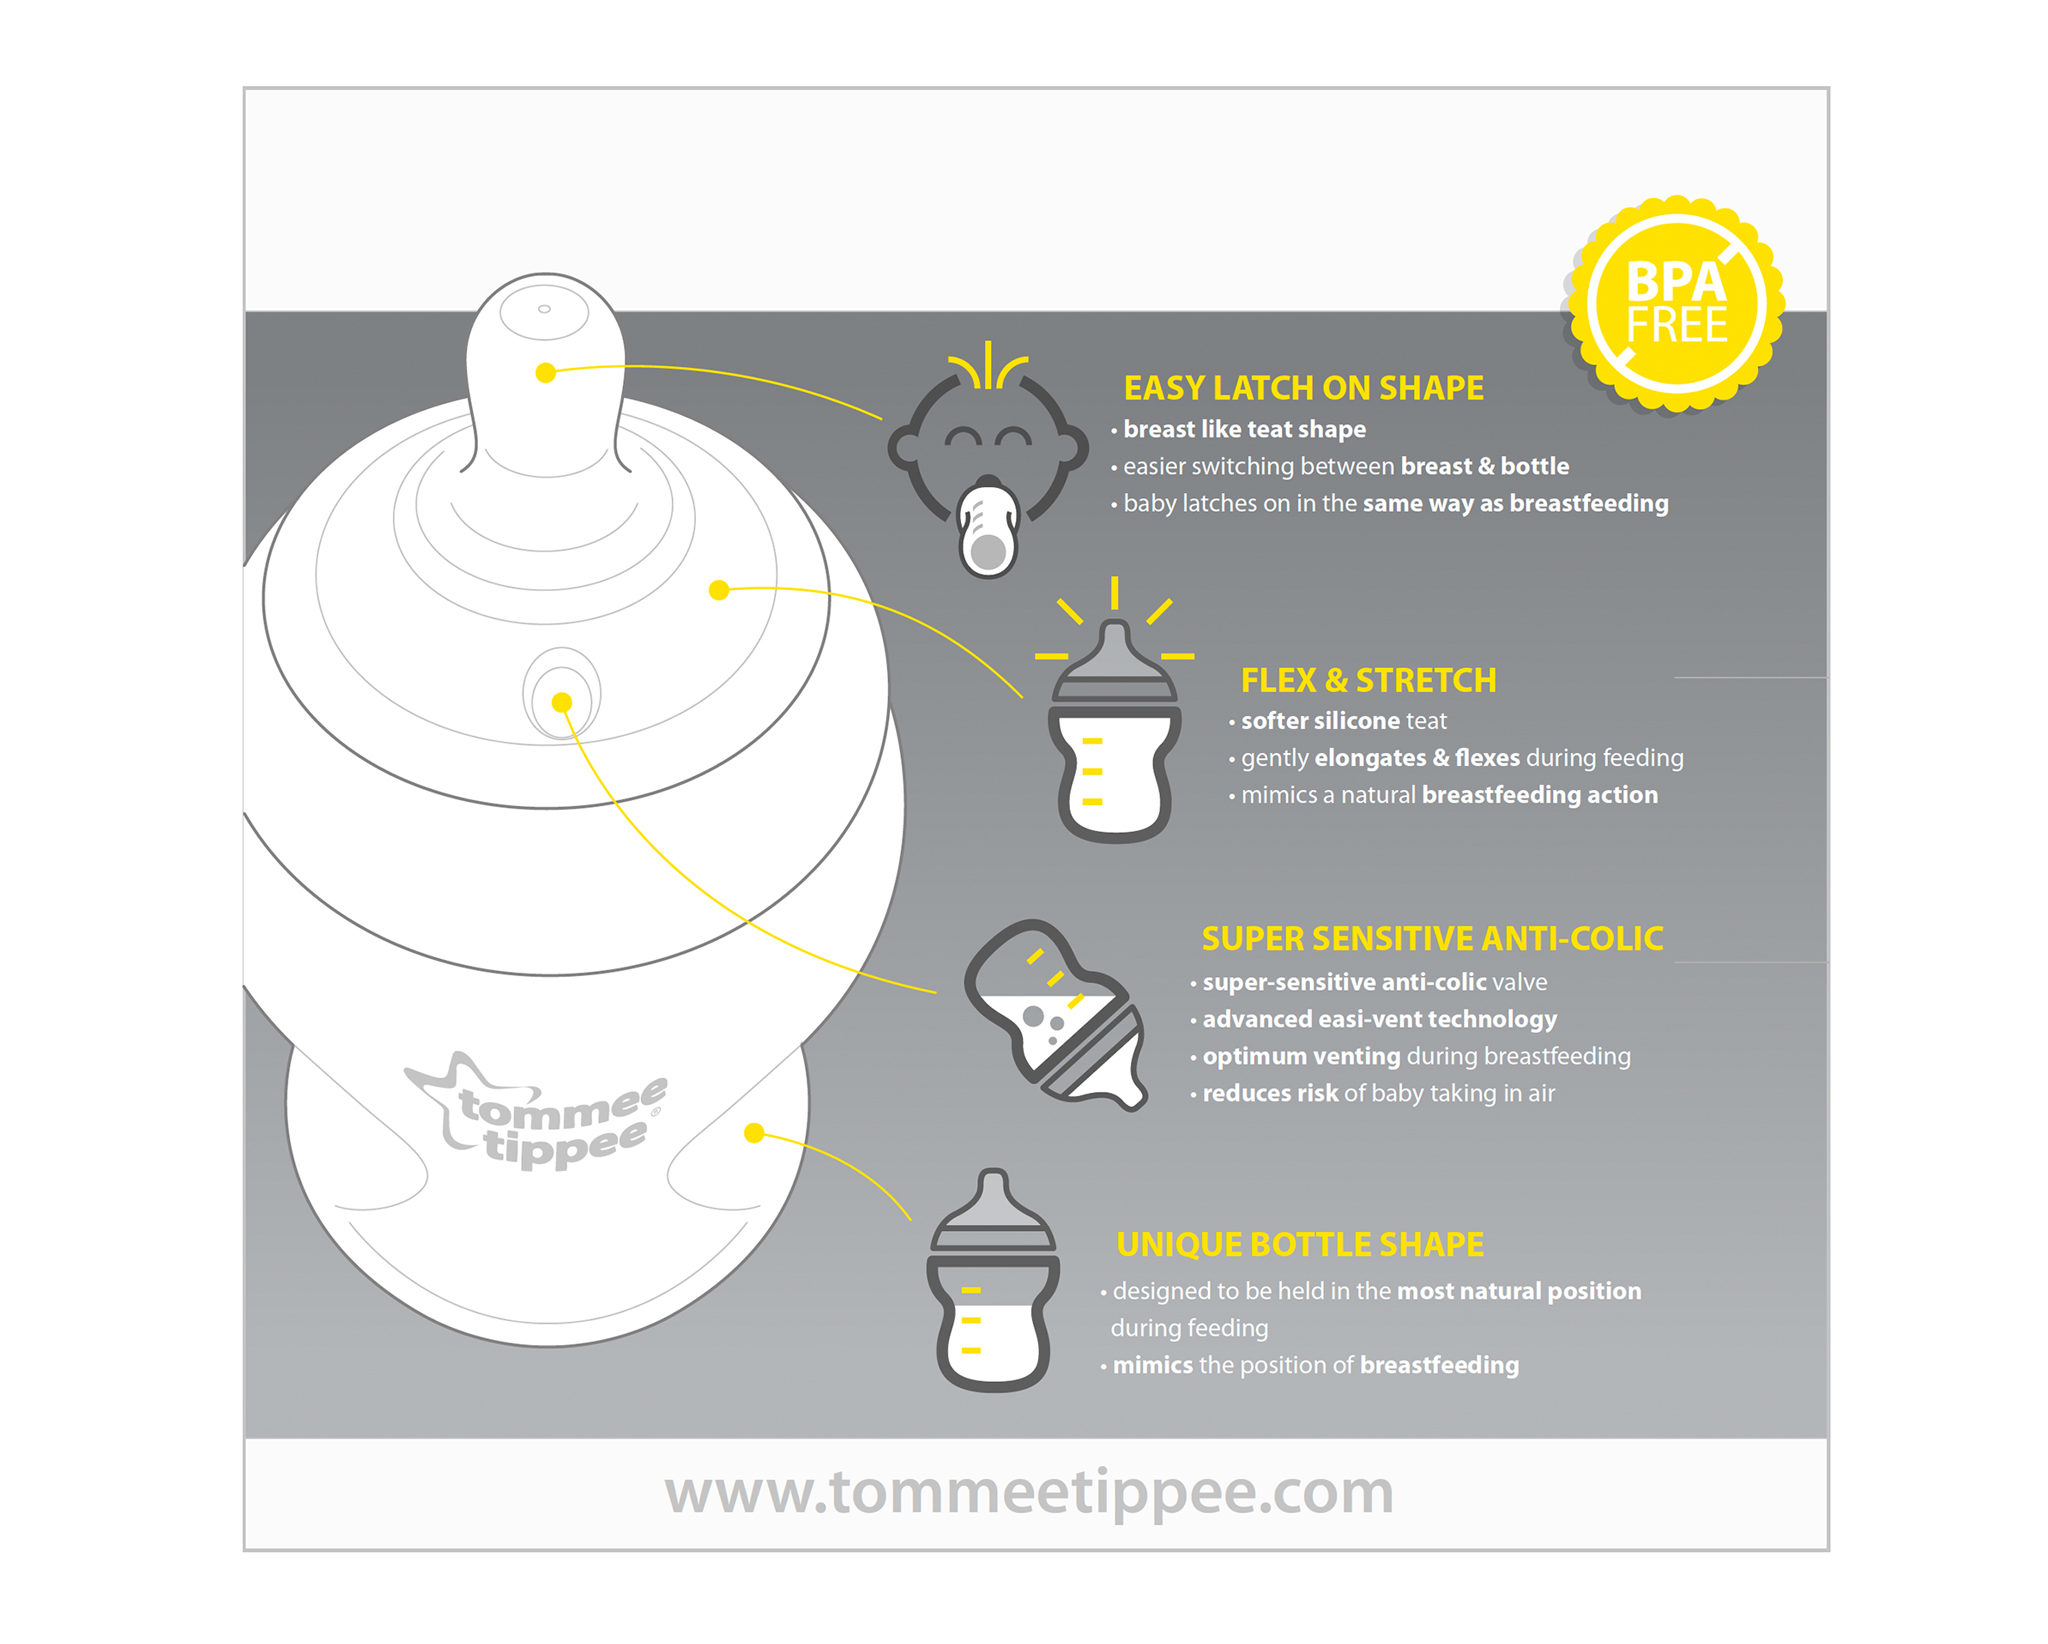 Tommee Tippee Illustrations